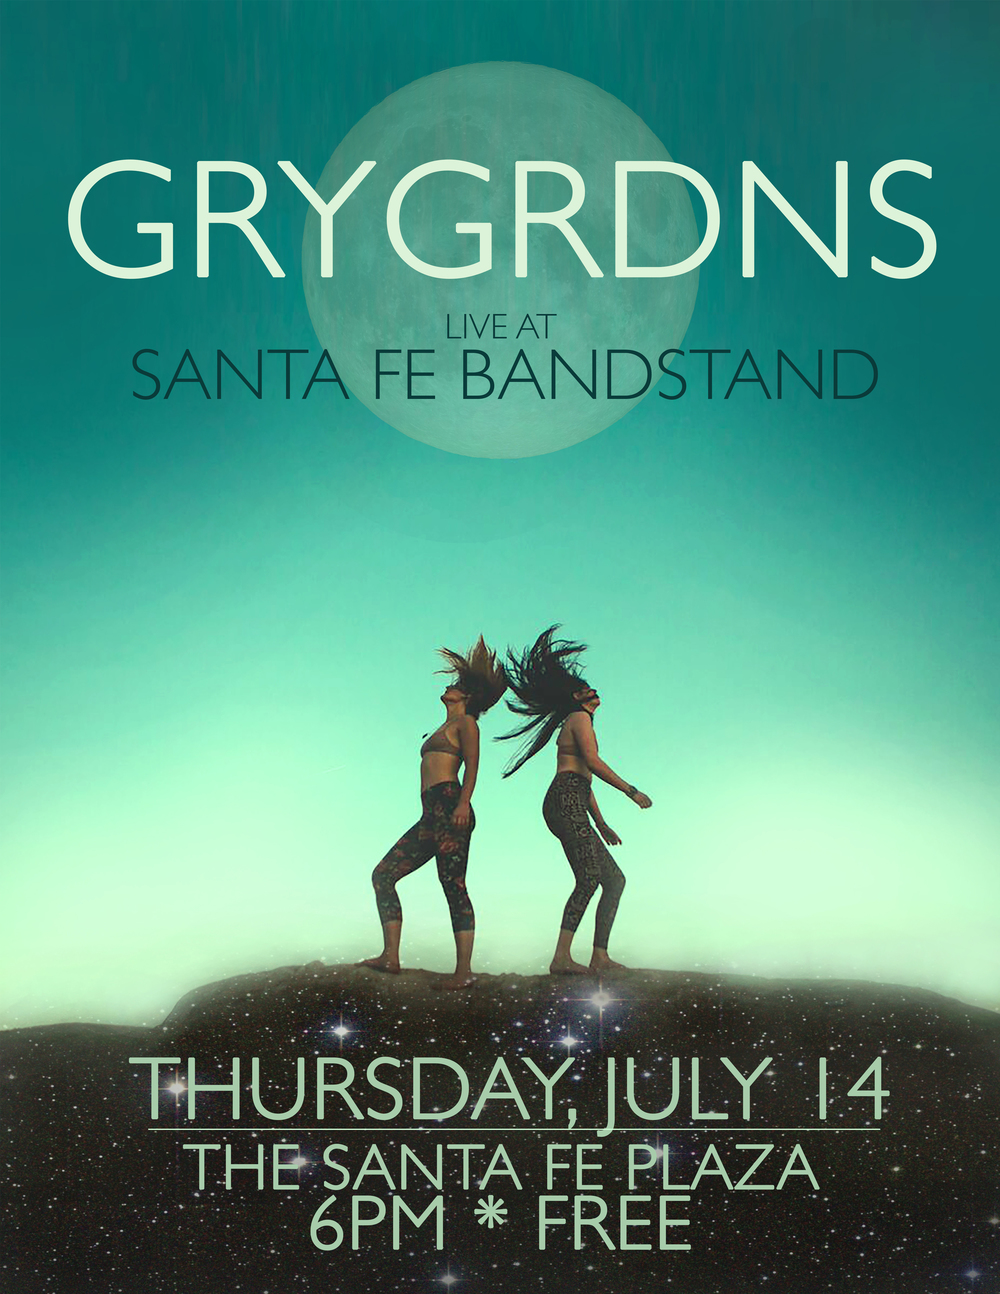 GRYGRDNS will perform at this year's Santa Fe Bandstand on Thursday,July 14th. The annual summer long music festival begins on July 5th and runs through August 26 and brings a wide range of local, national and international acts to perform in the heart of downtown Santa Fe. GRYGRDNS plays at 6pm and all Bandstand shows are free and open to the public. For more information vistit:  http://santafebandstand.org/event/grydrdns/